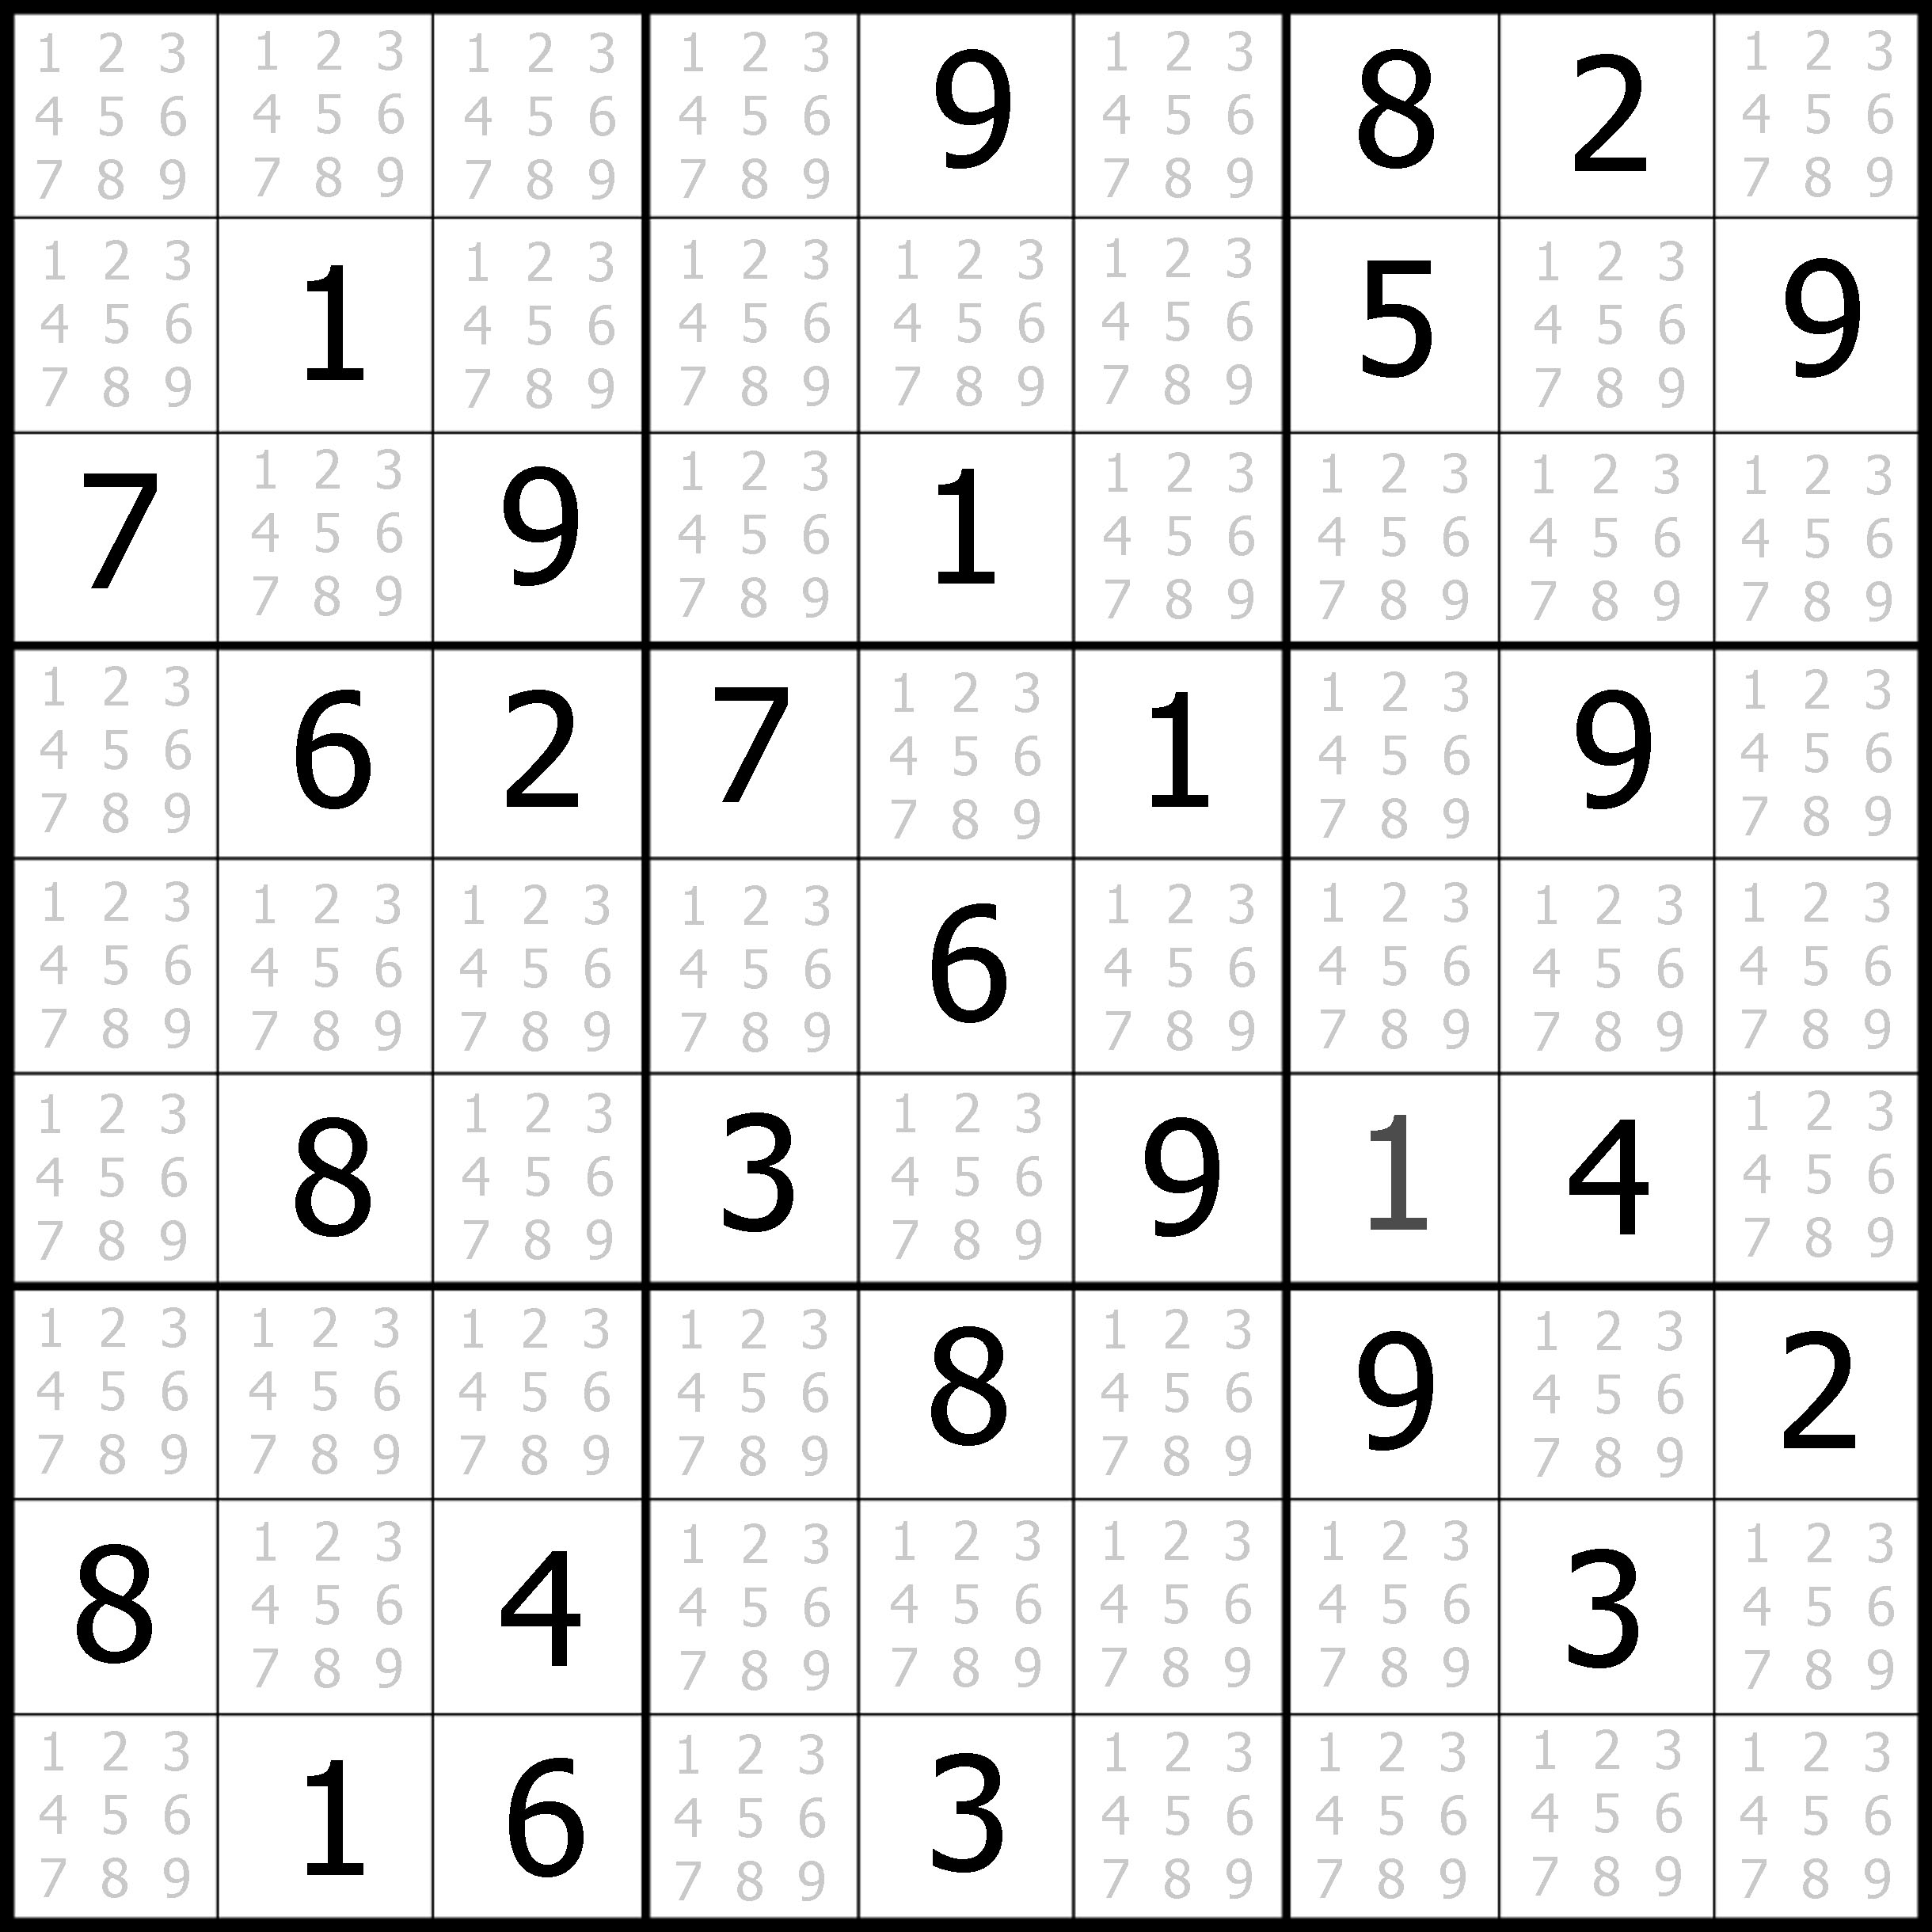 Easy Sudoku Printable | Kids Activities - Printable Sudoku Puzzles Online